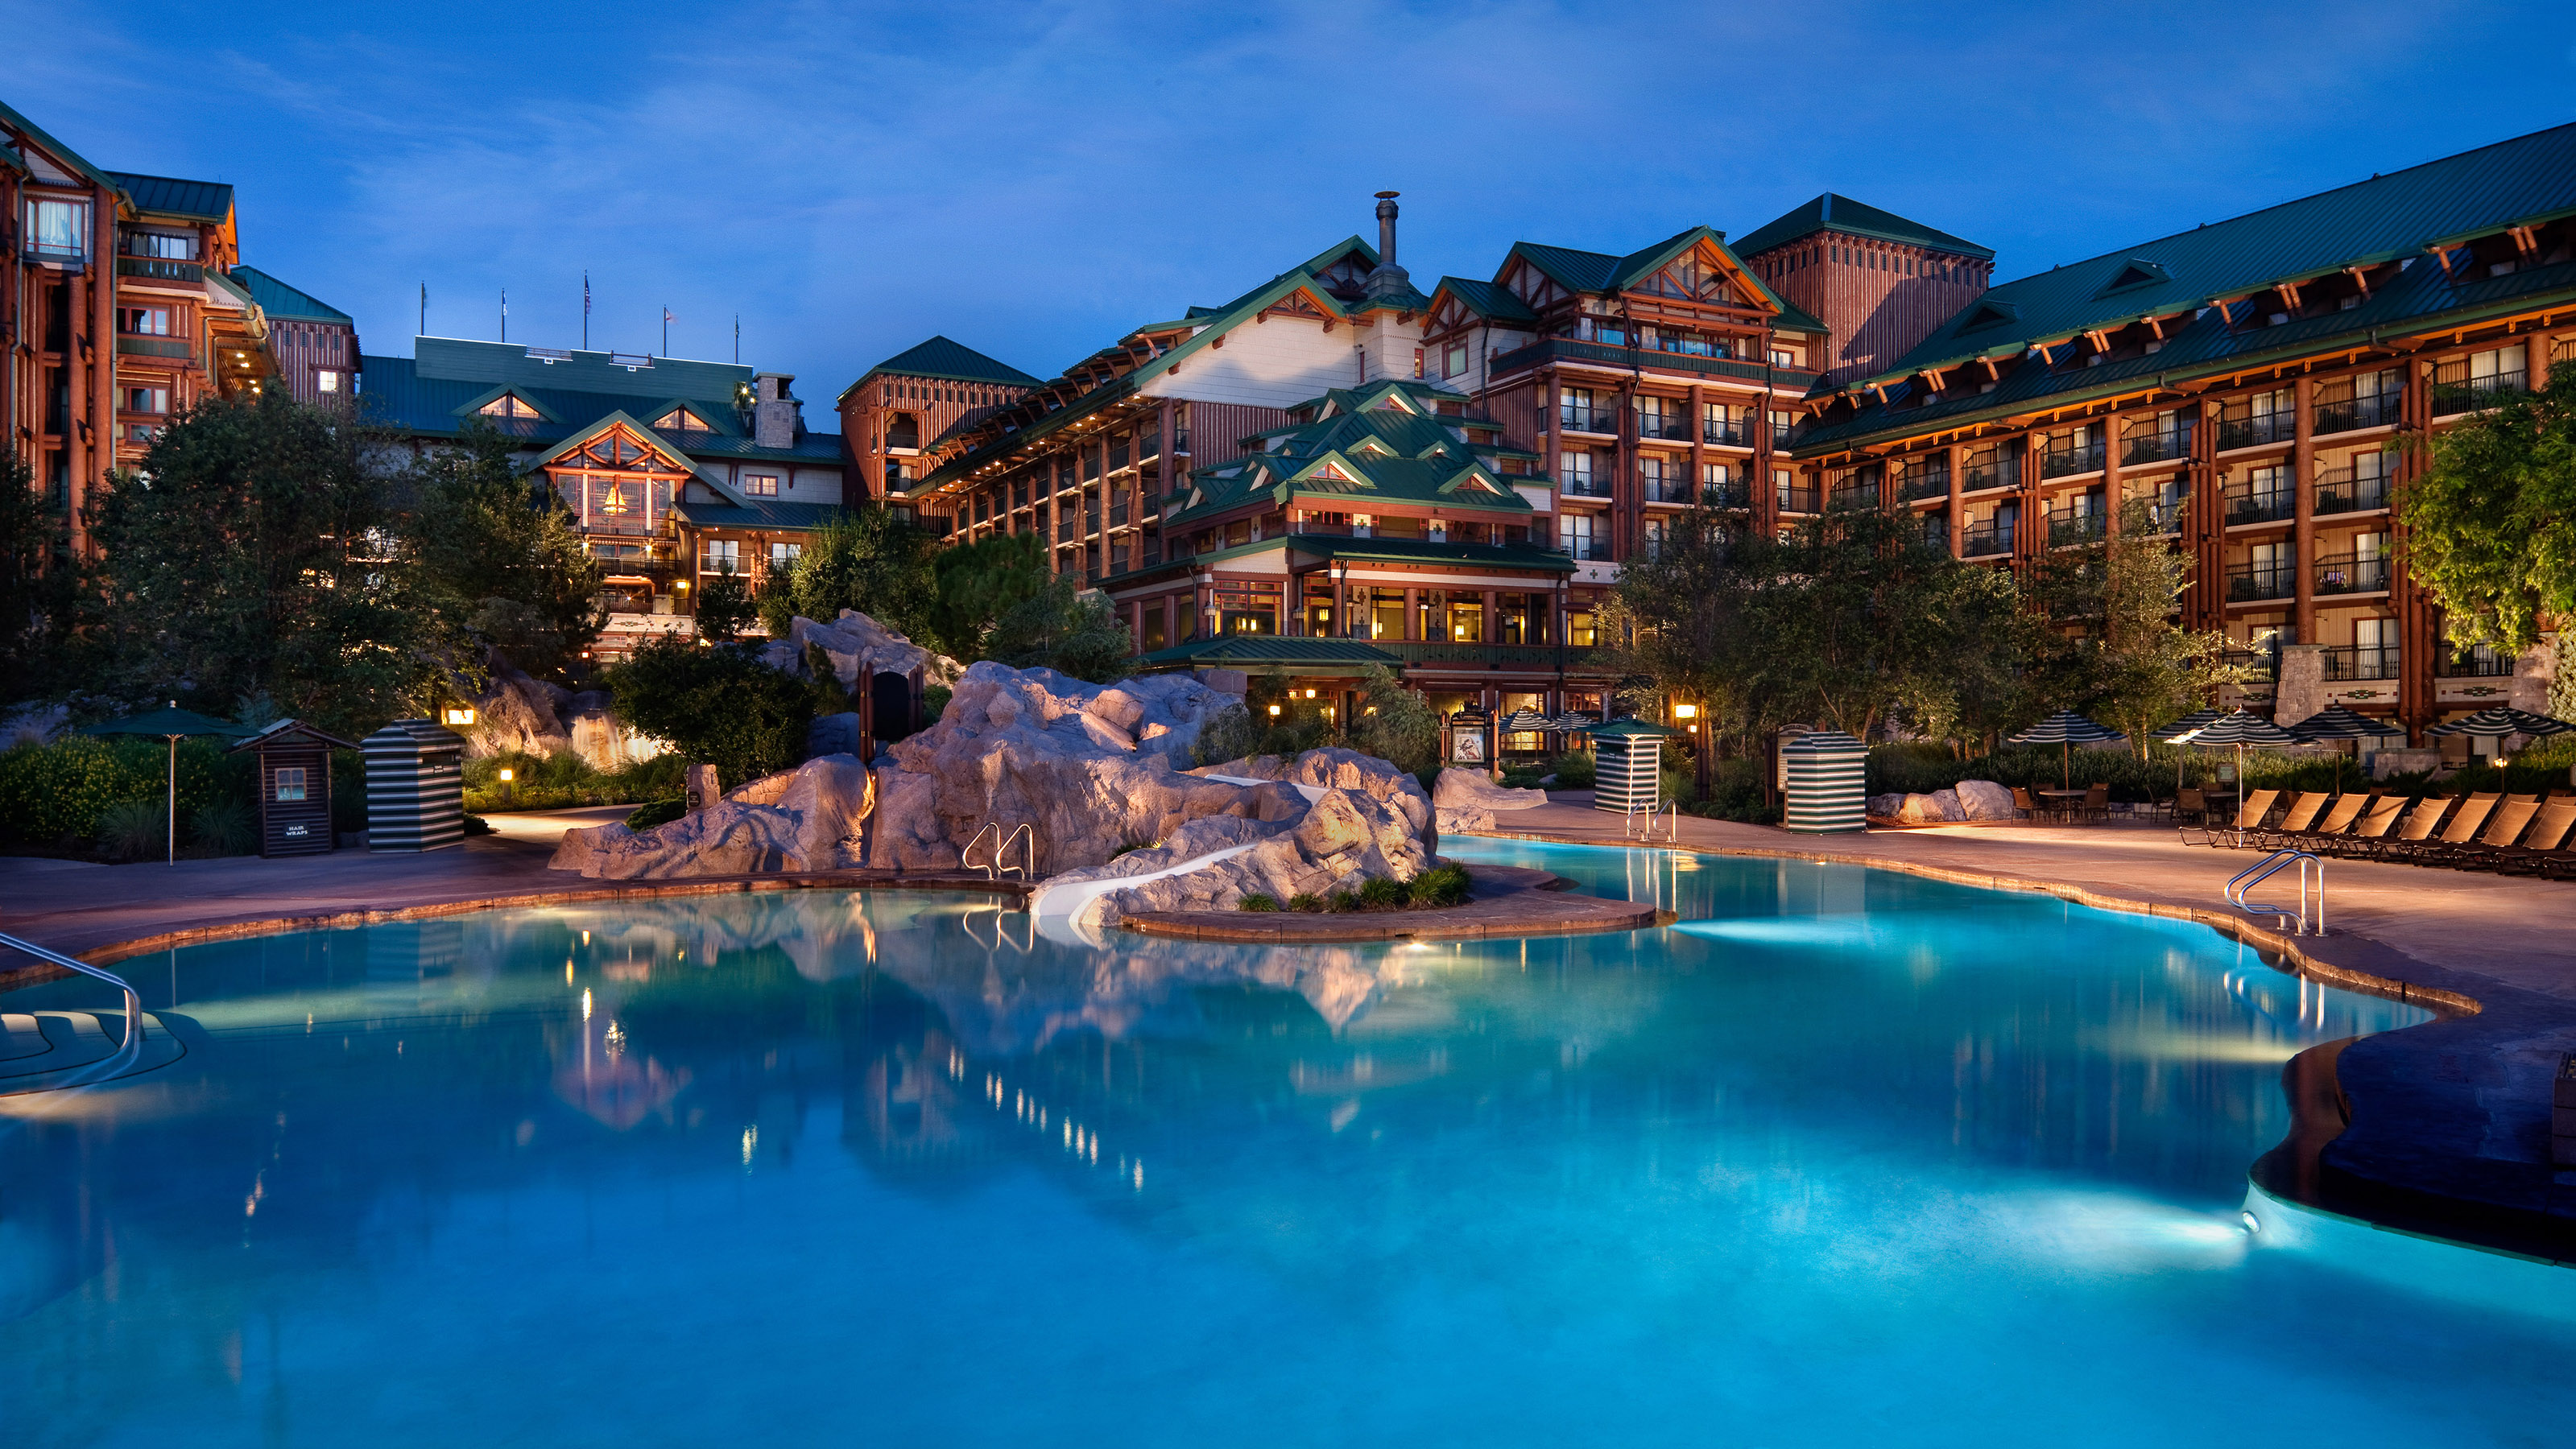 Disney 39 s Wilderness Lodge Serene Luxury Magical DIStractions